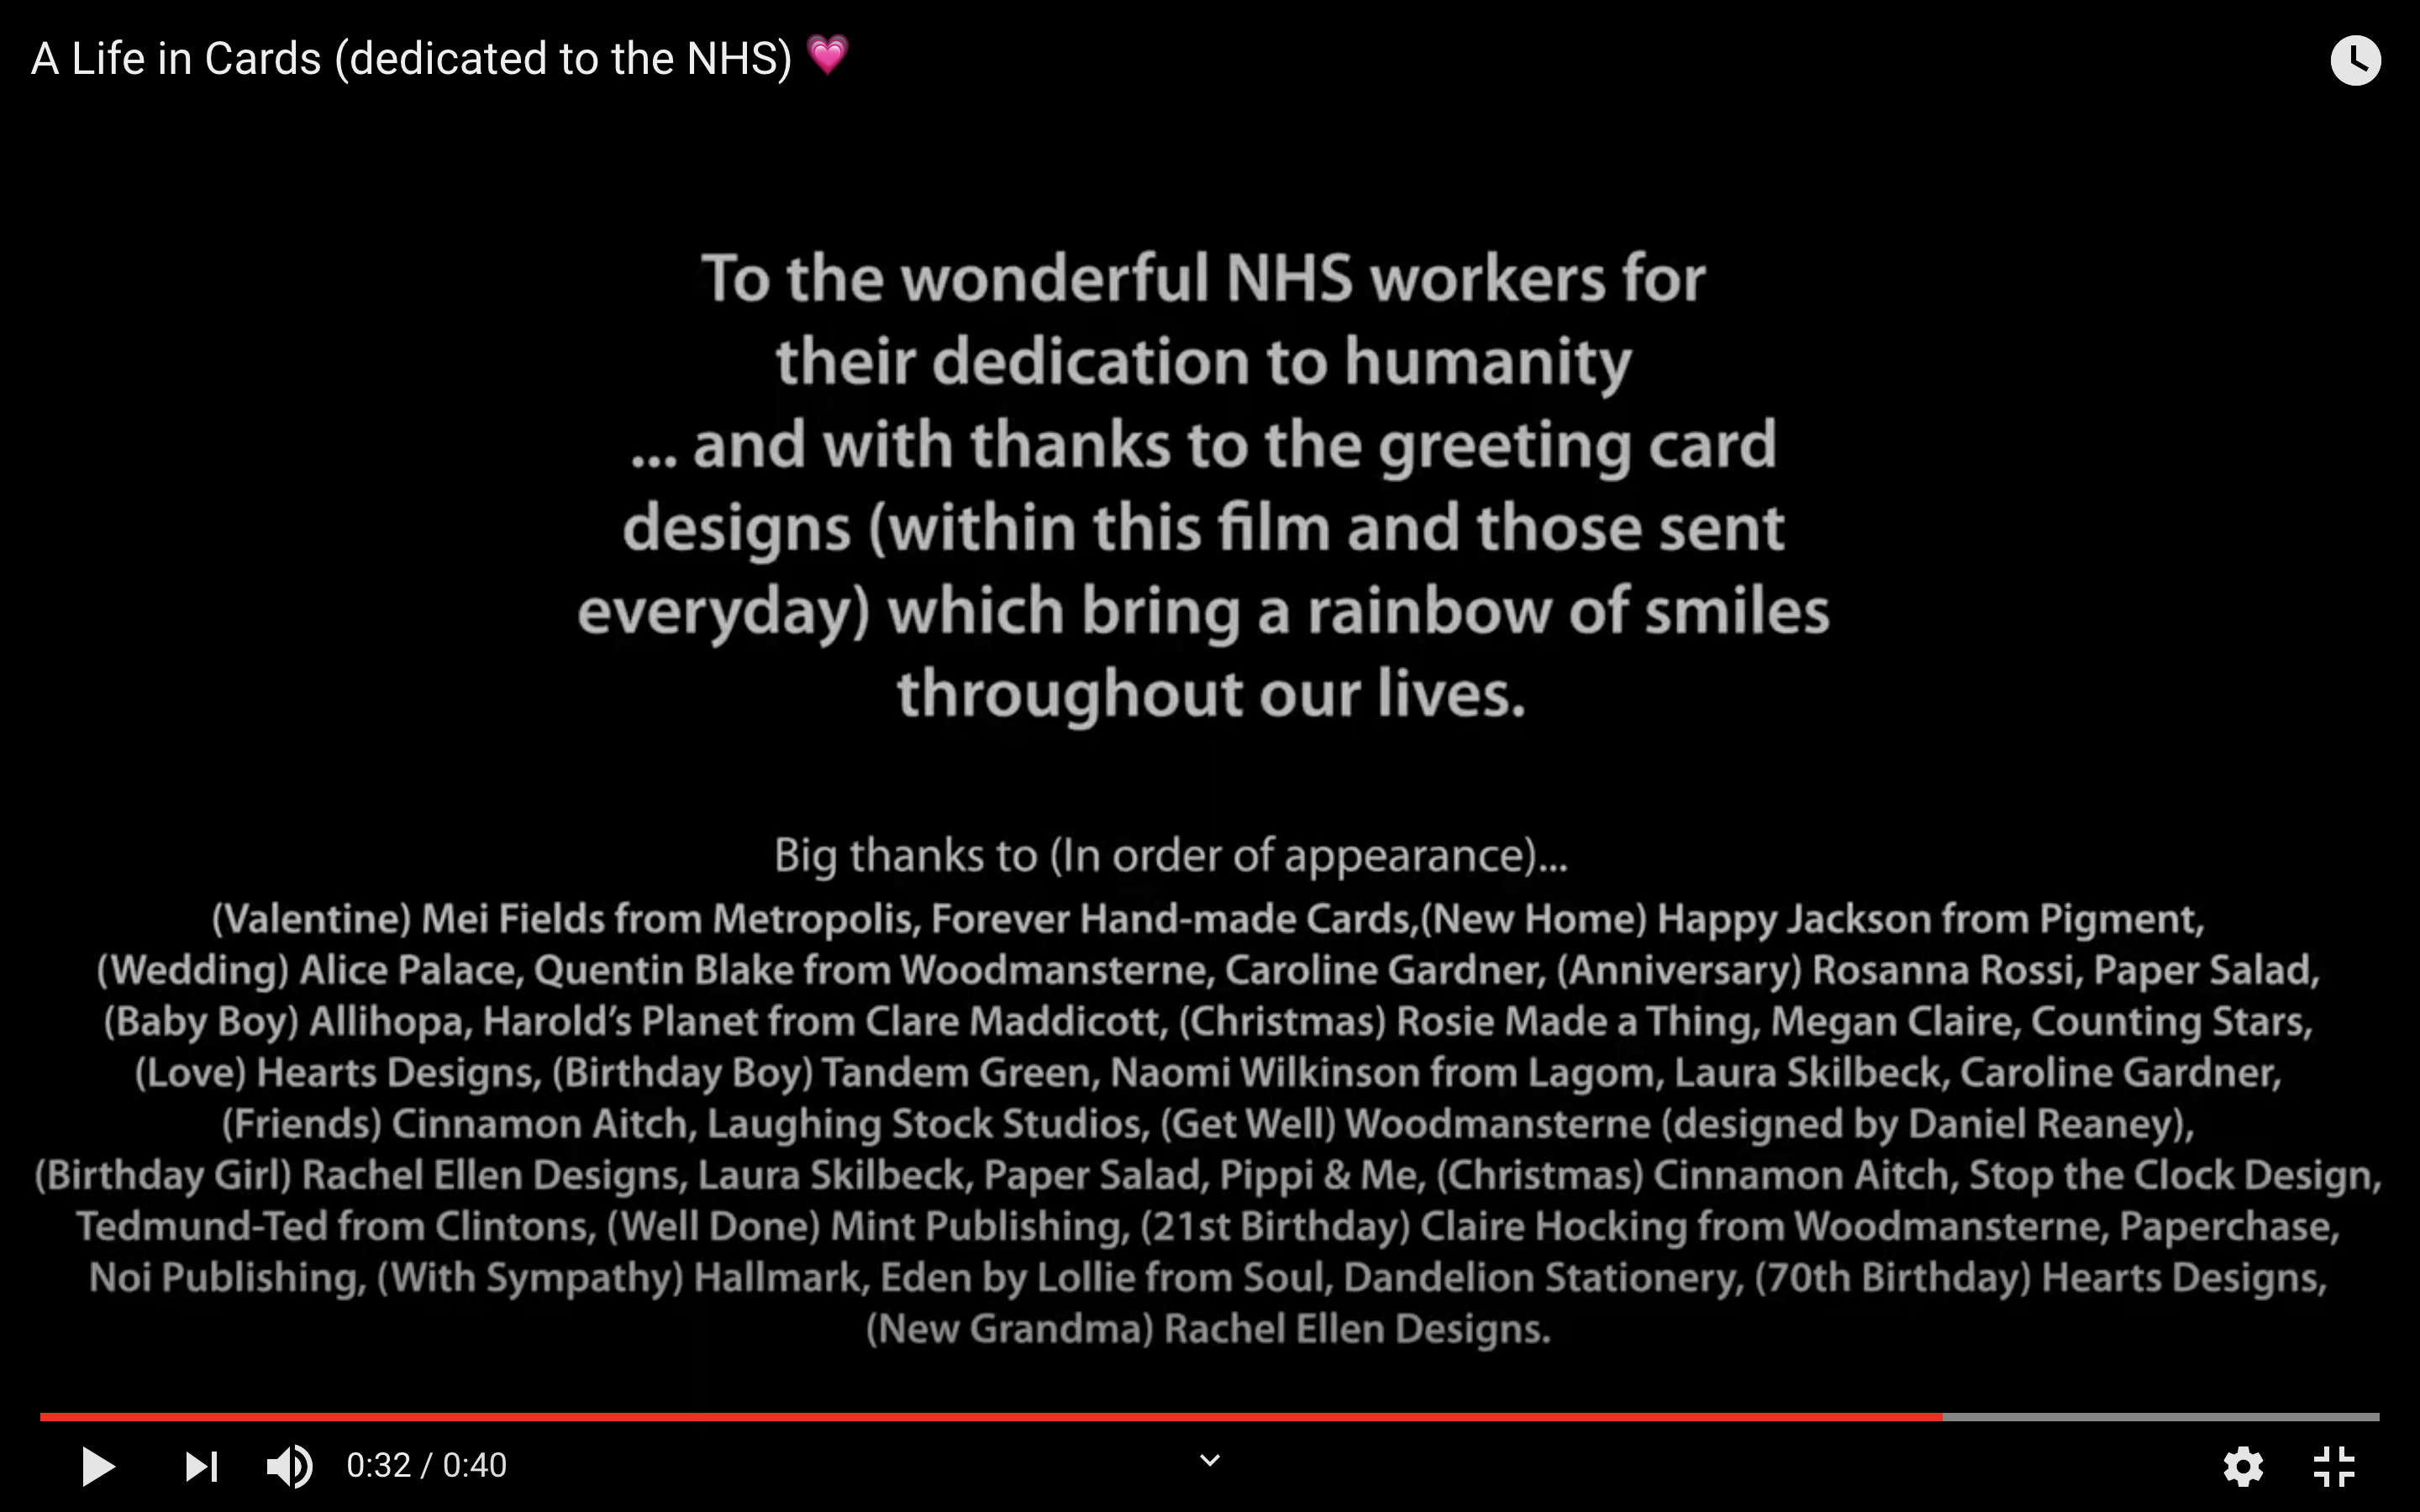 Above: The thank yous at the end of the film.